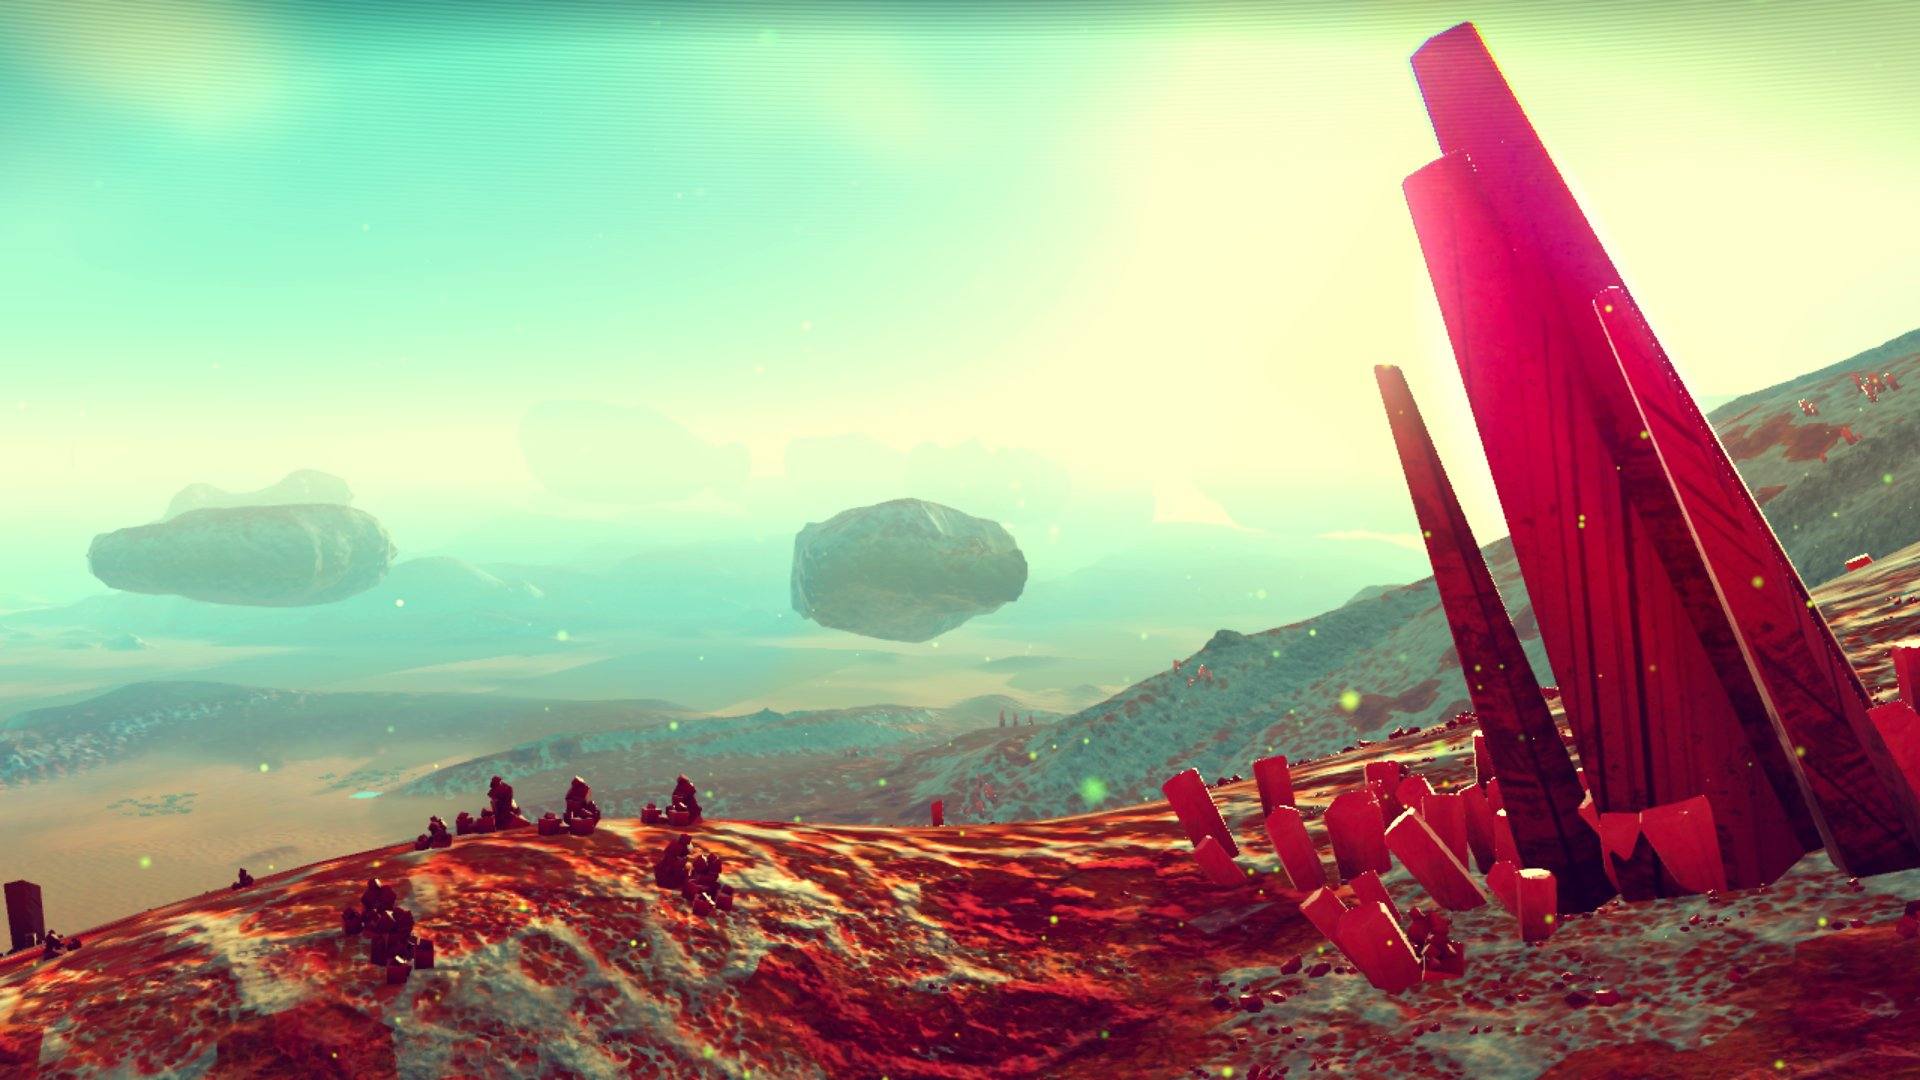 No Man S Sky Background Hd Wallpaper Background Image